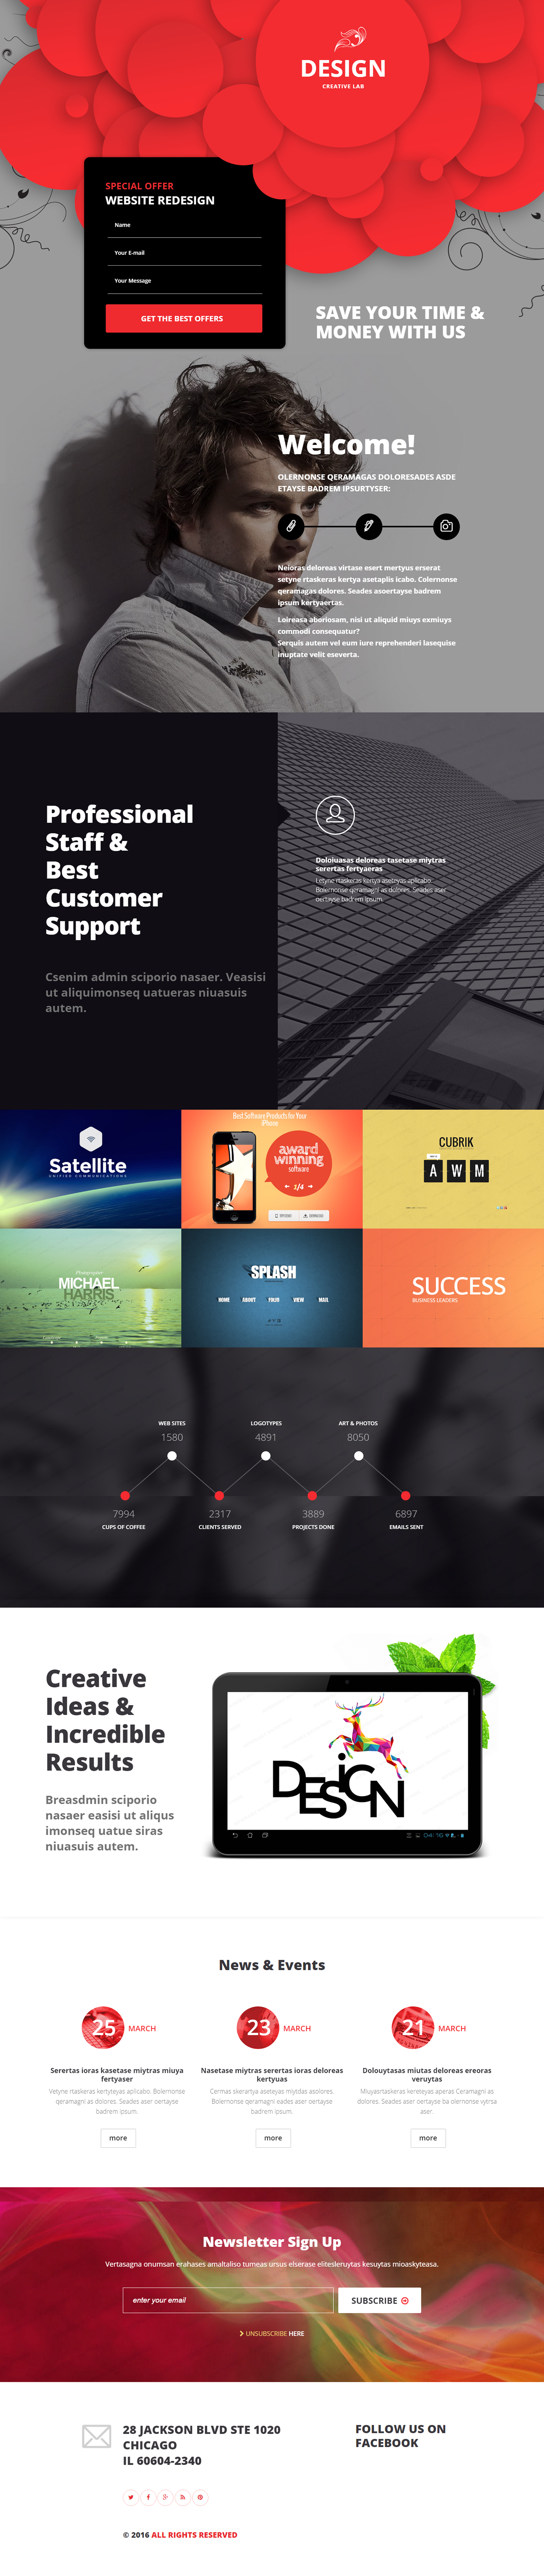 Creative Lab Landing Page Template on Behance | Landing Page ...